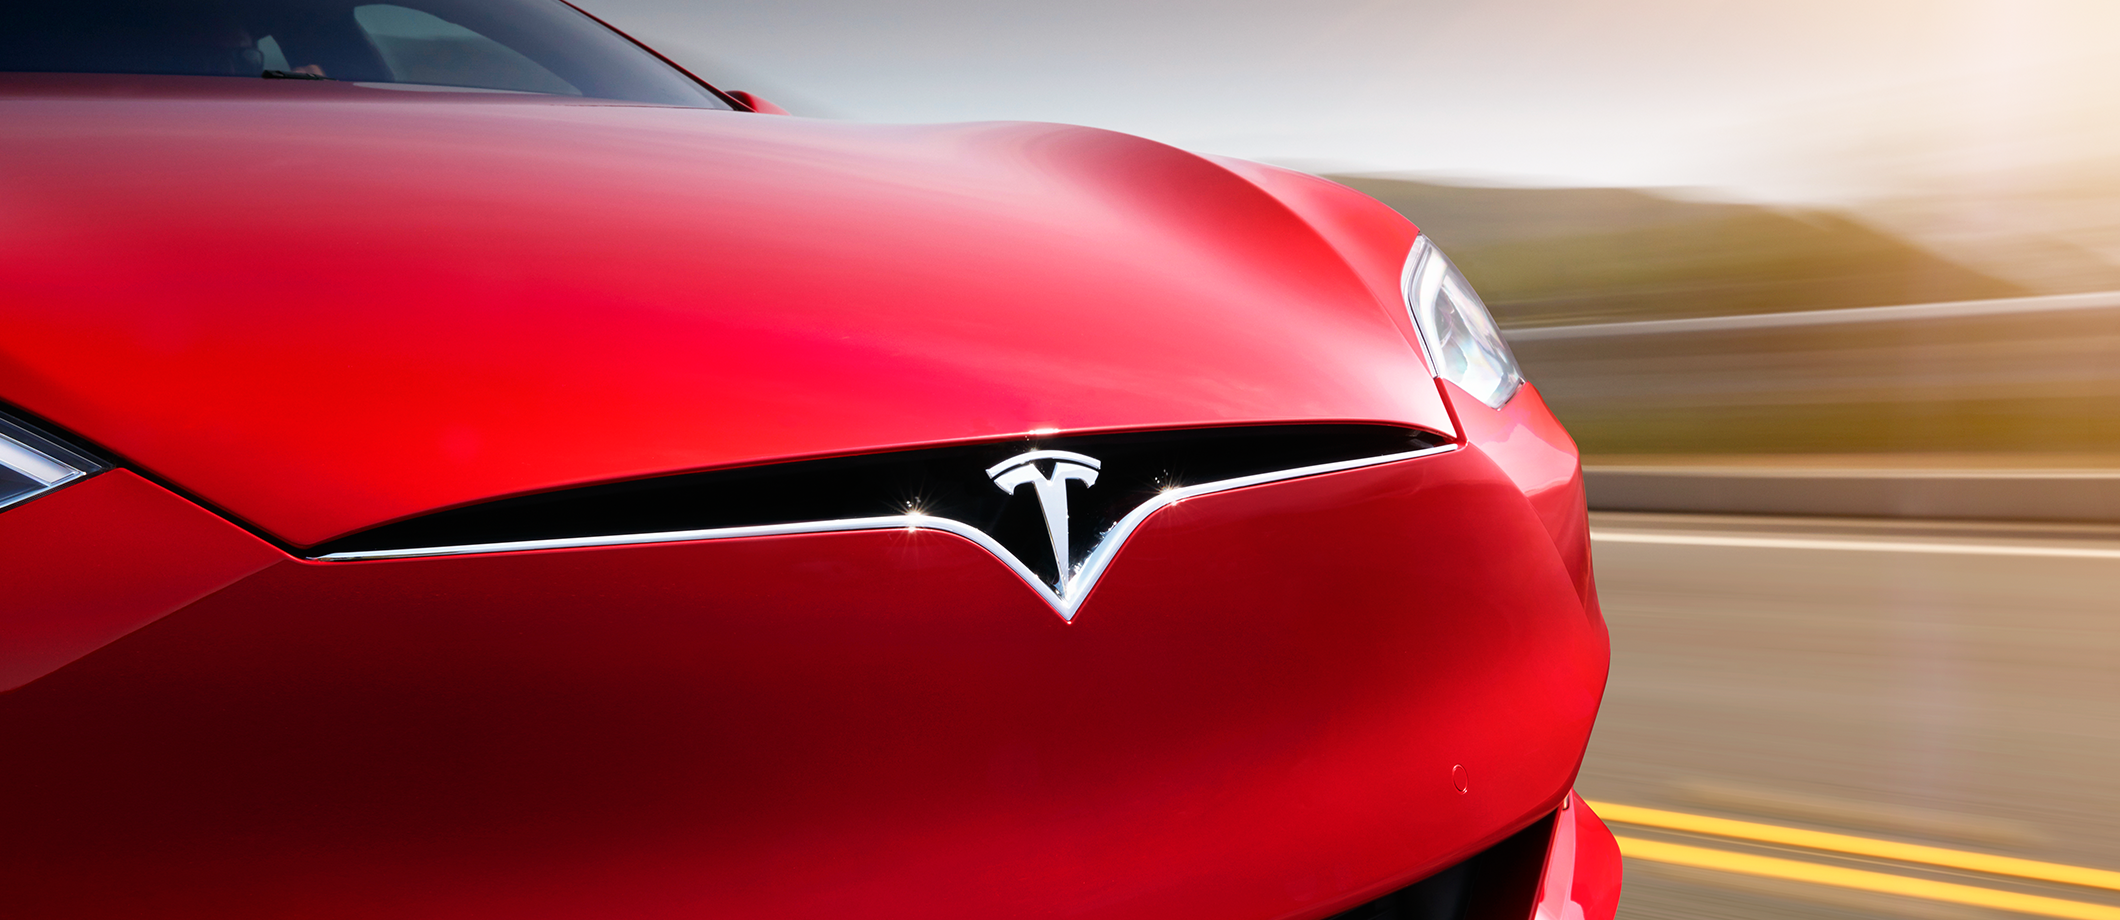 Model S Red Grill